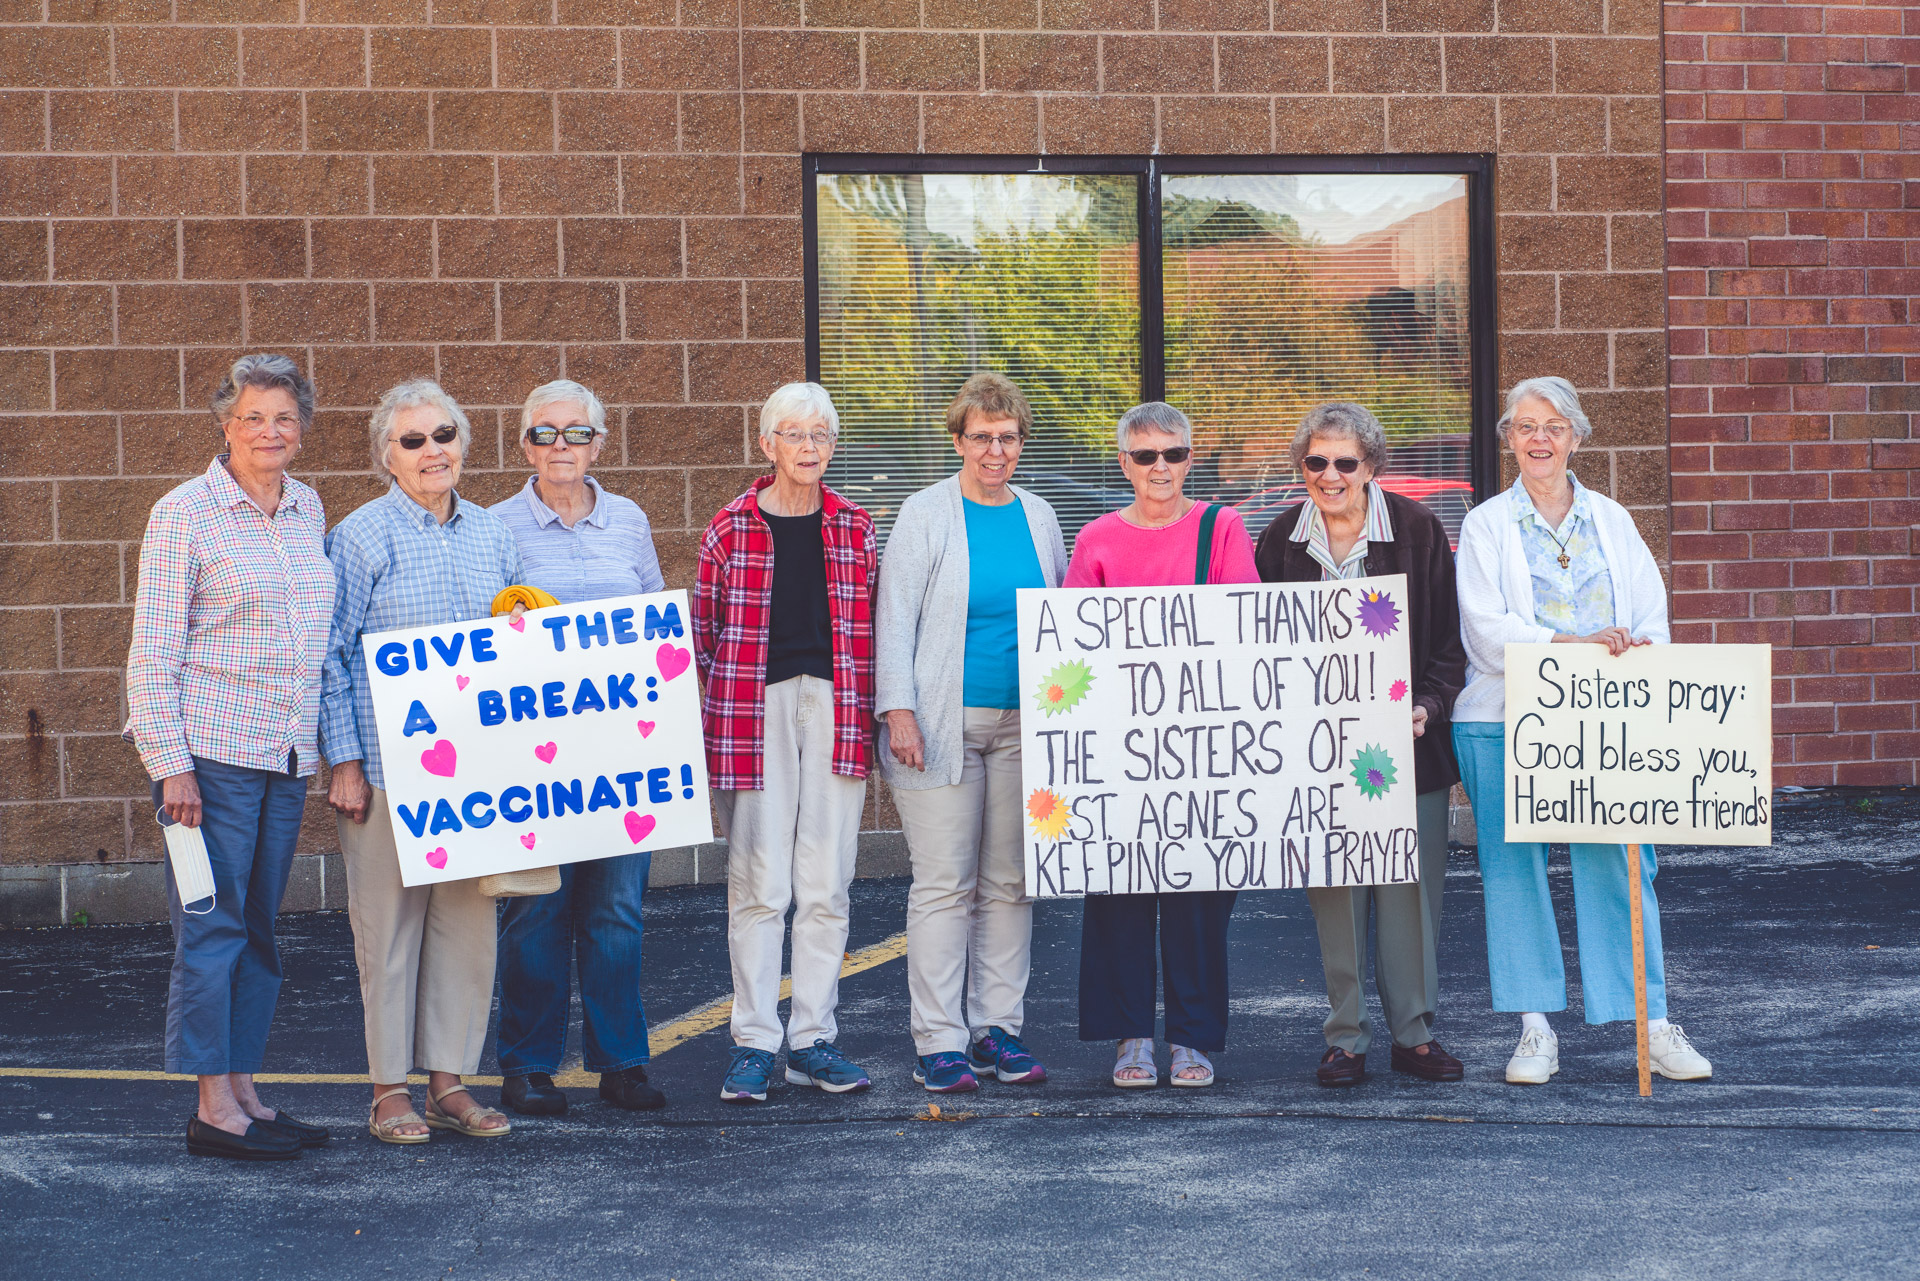 8 sisters with signs